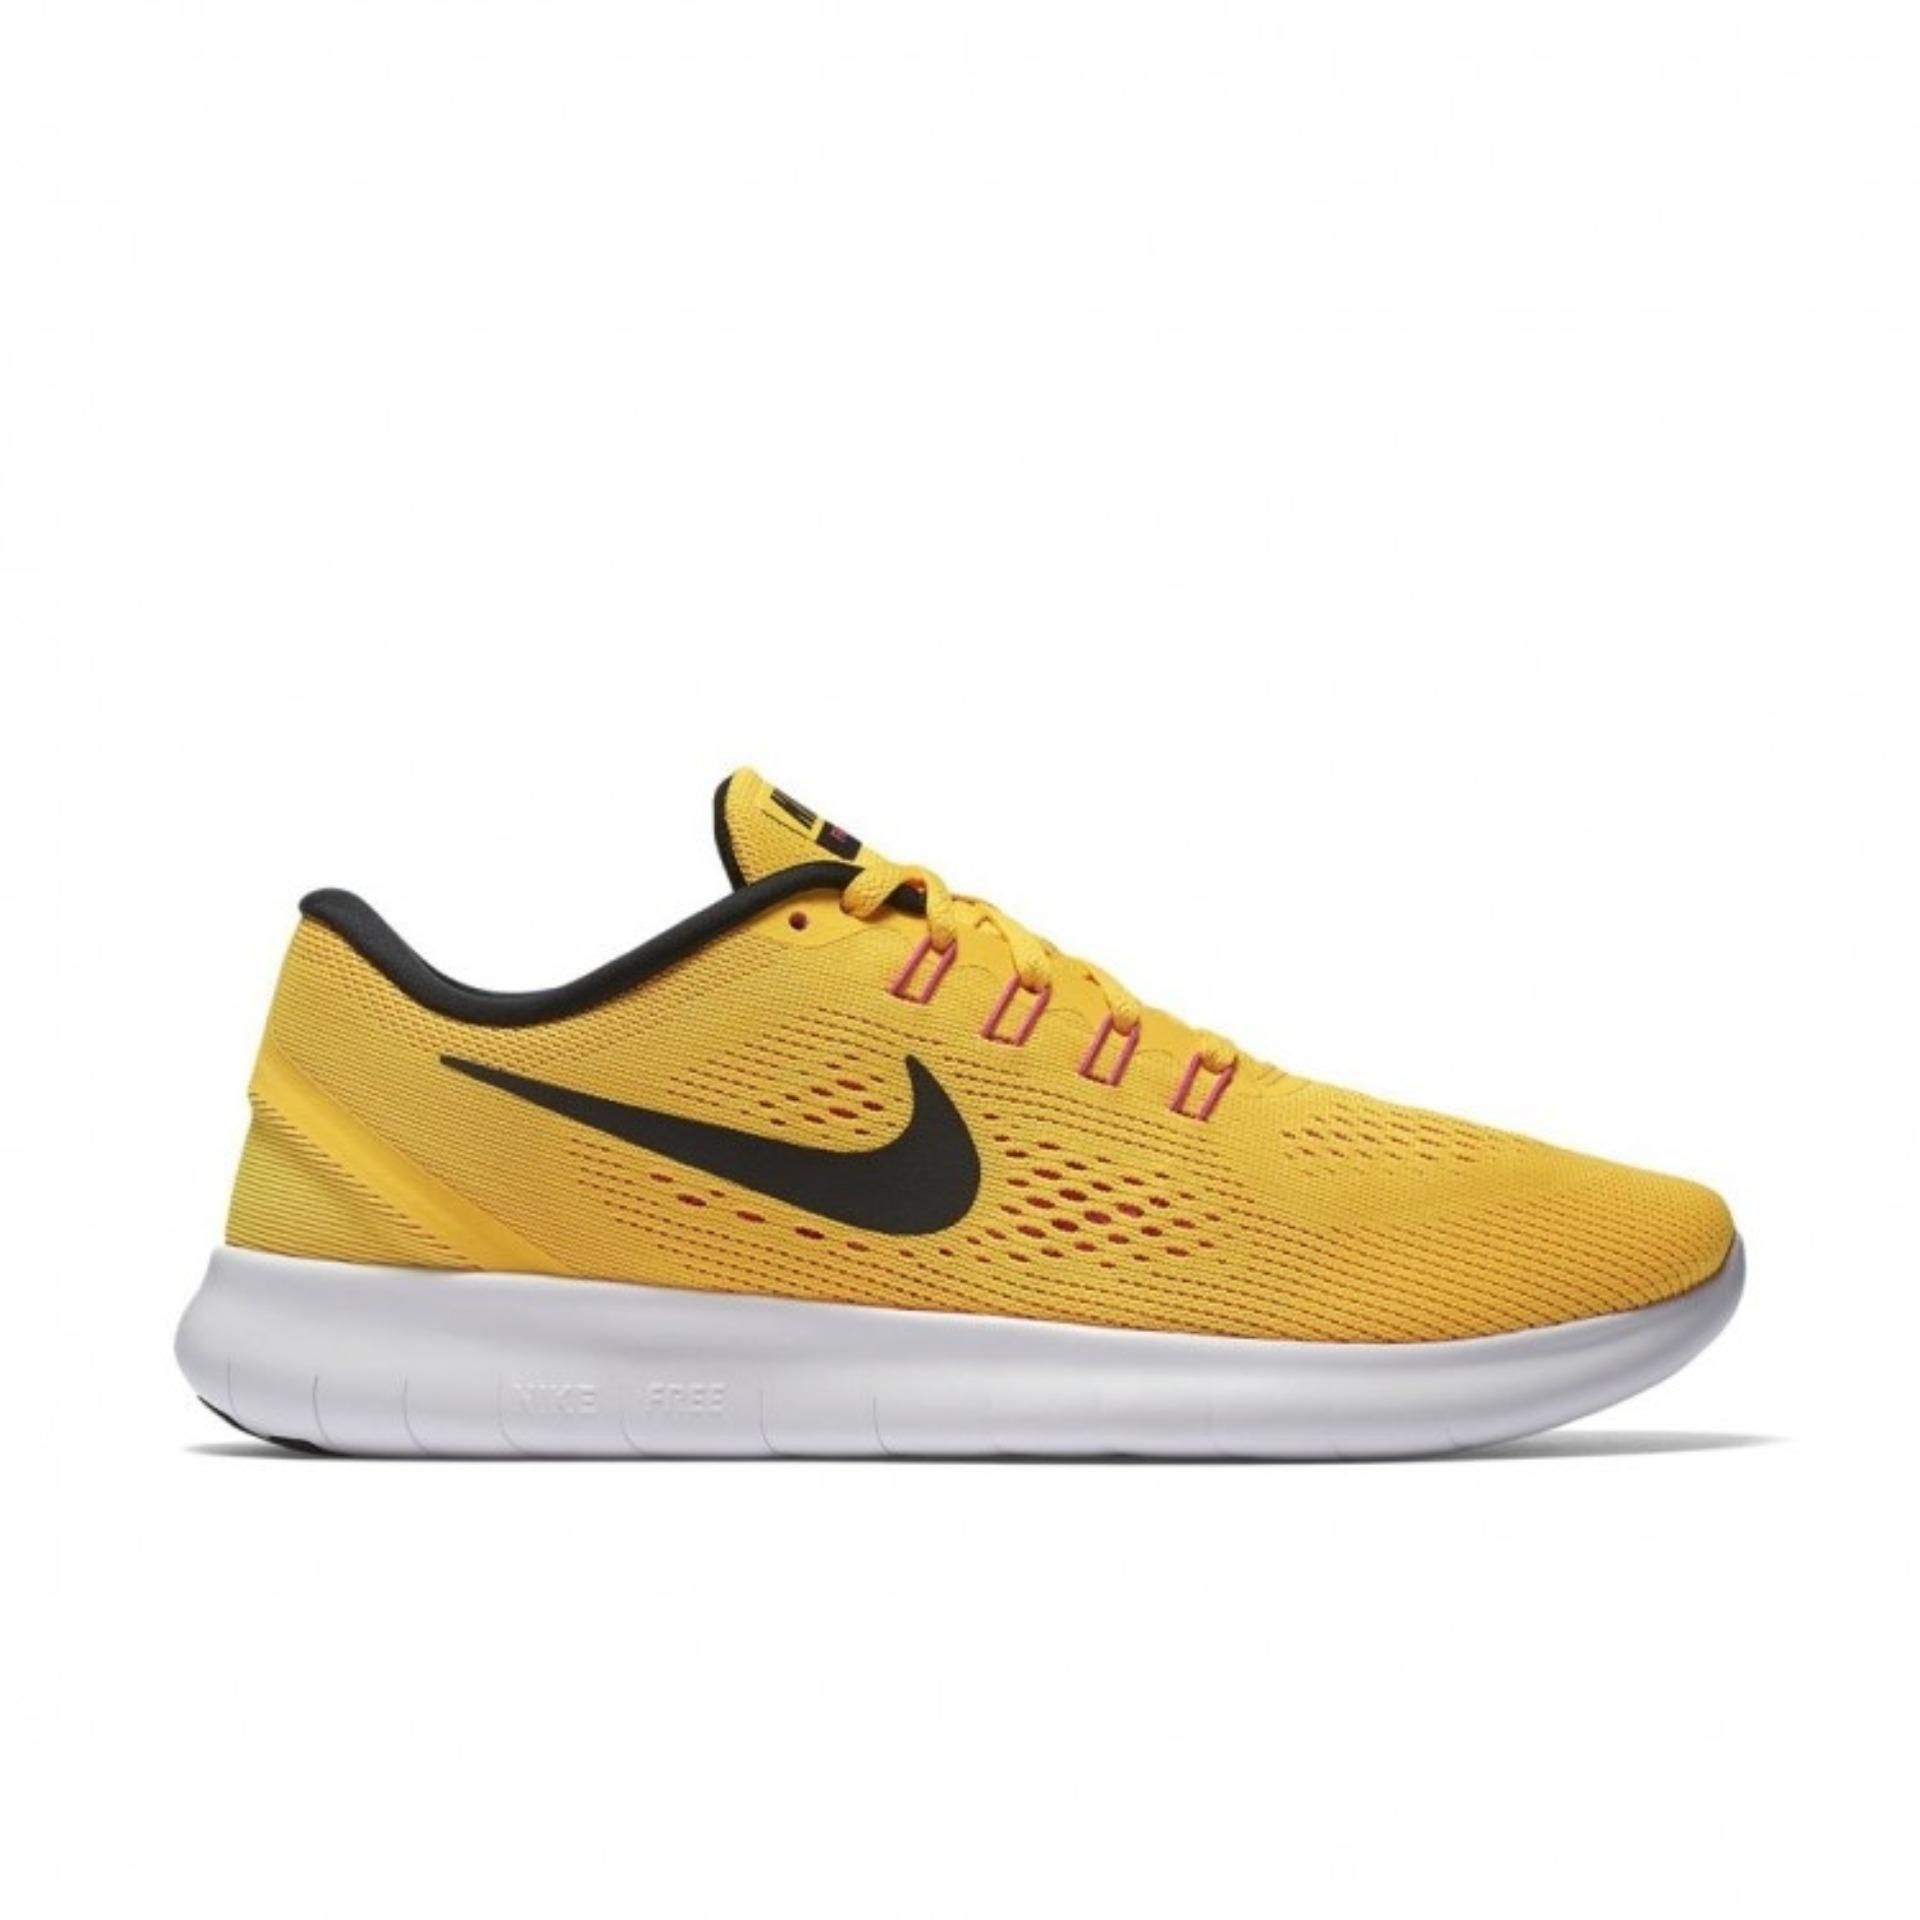 552db13c44fd NIKE FREE RN - Women Shoes (Laser Yellow Orange) 831509-800